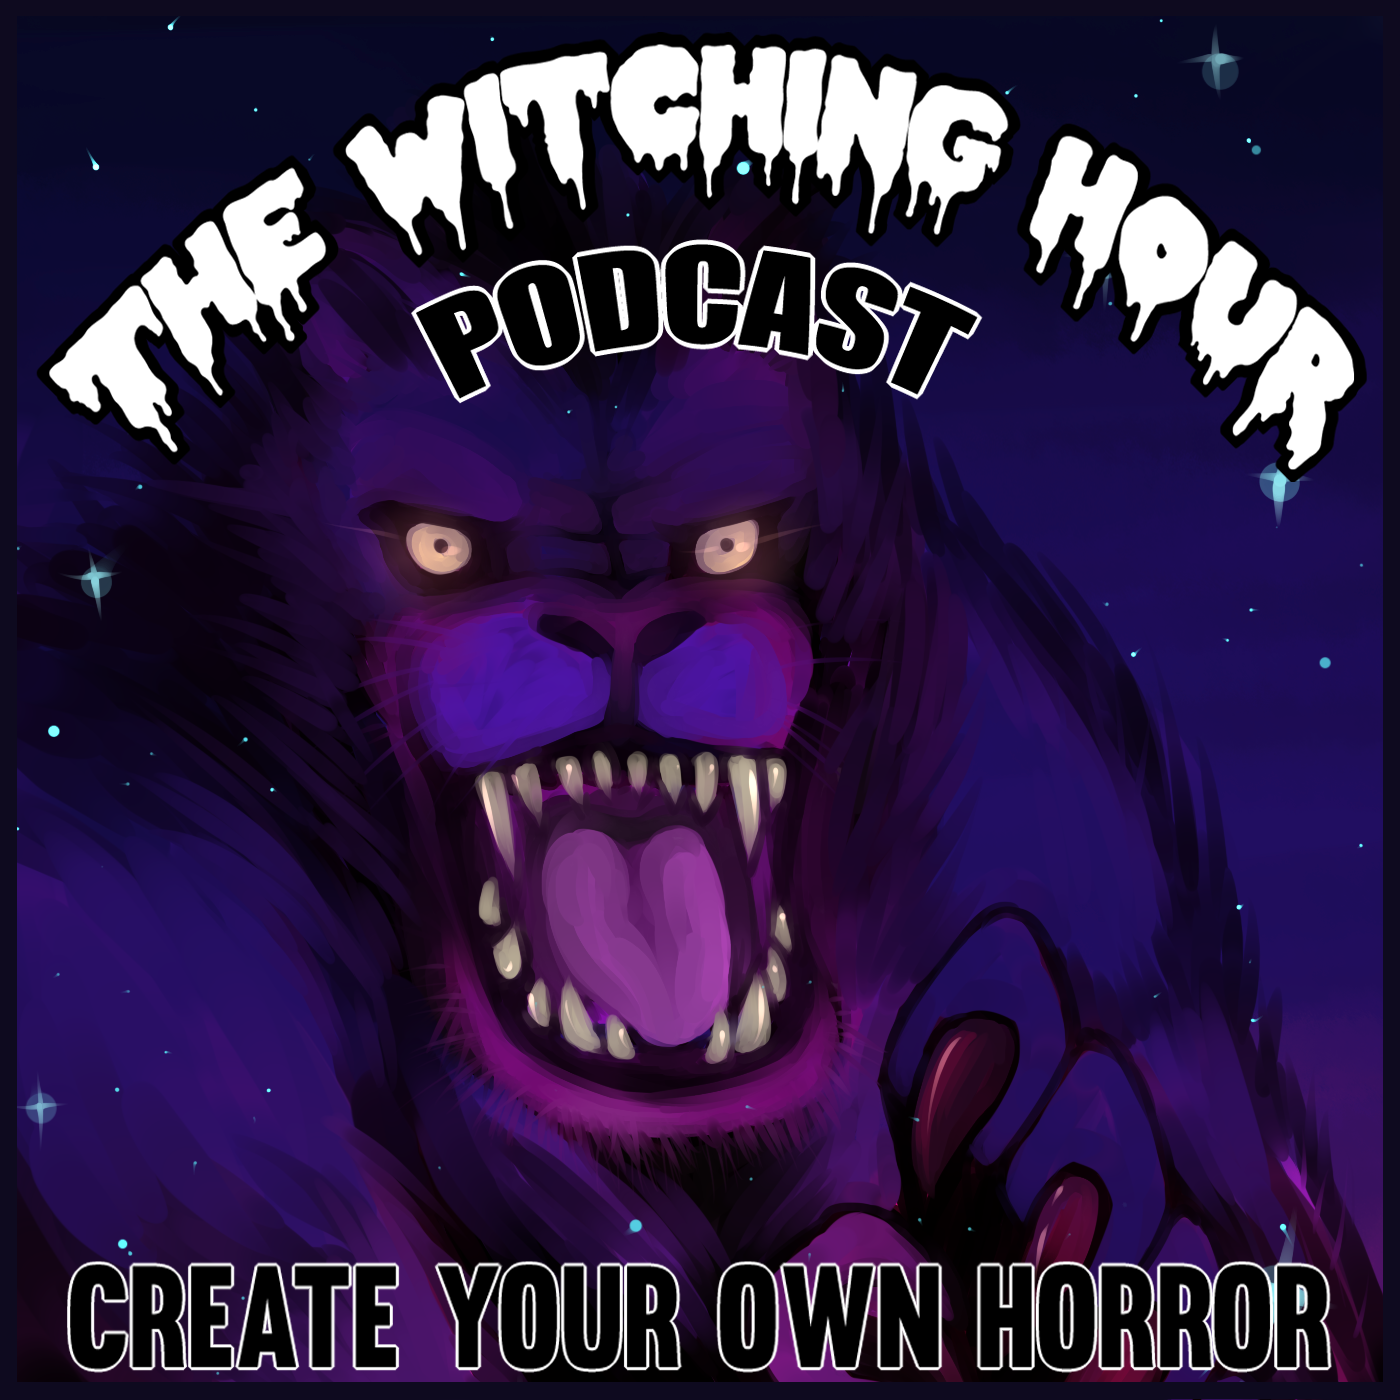 ep52_beast_gevaudan_witchinghour_podcast